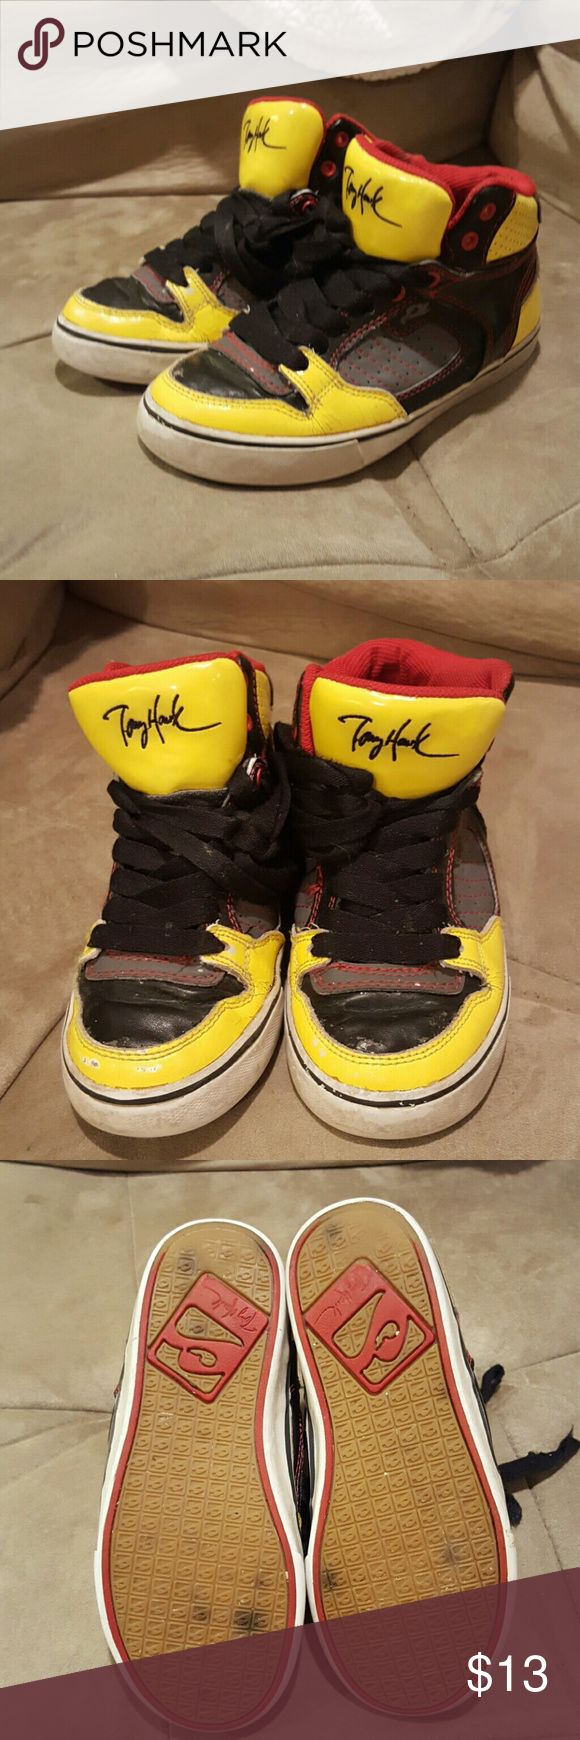 Tony Hawk Tennis Shoes - used condition, some signs of wear but lots of life left in these cute little boy shoes - yellow, red and black Tony Hawk  Shoes Sneakers